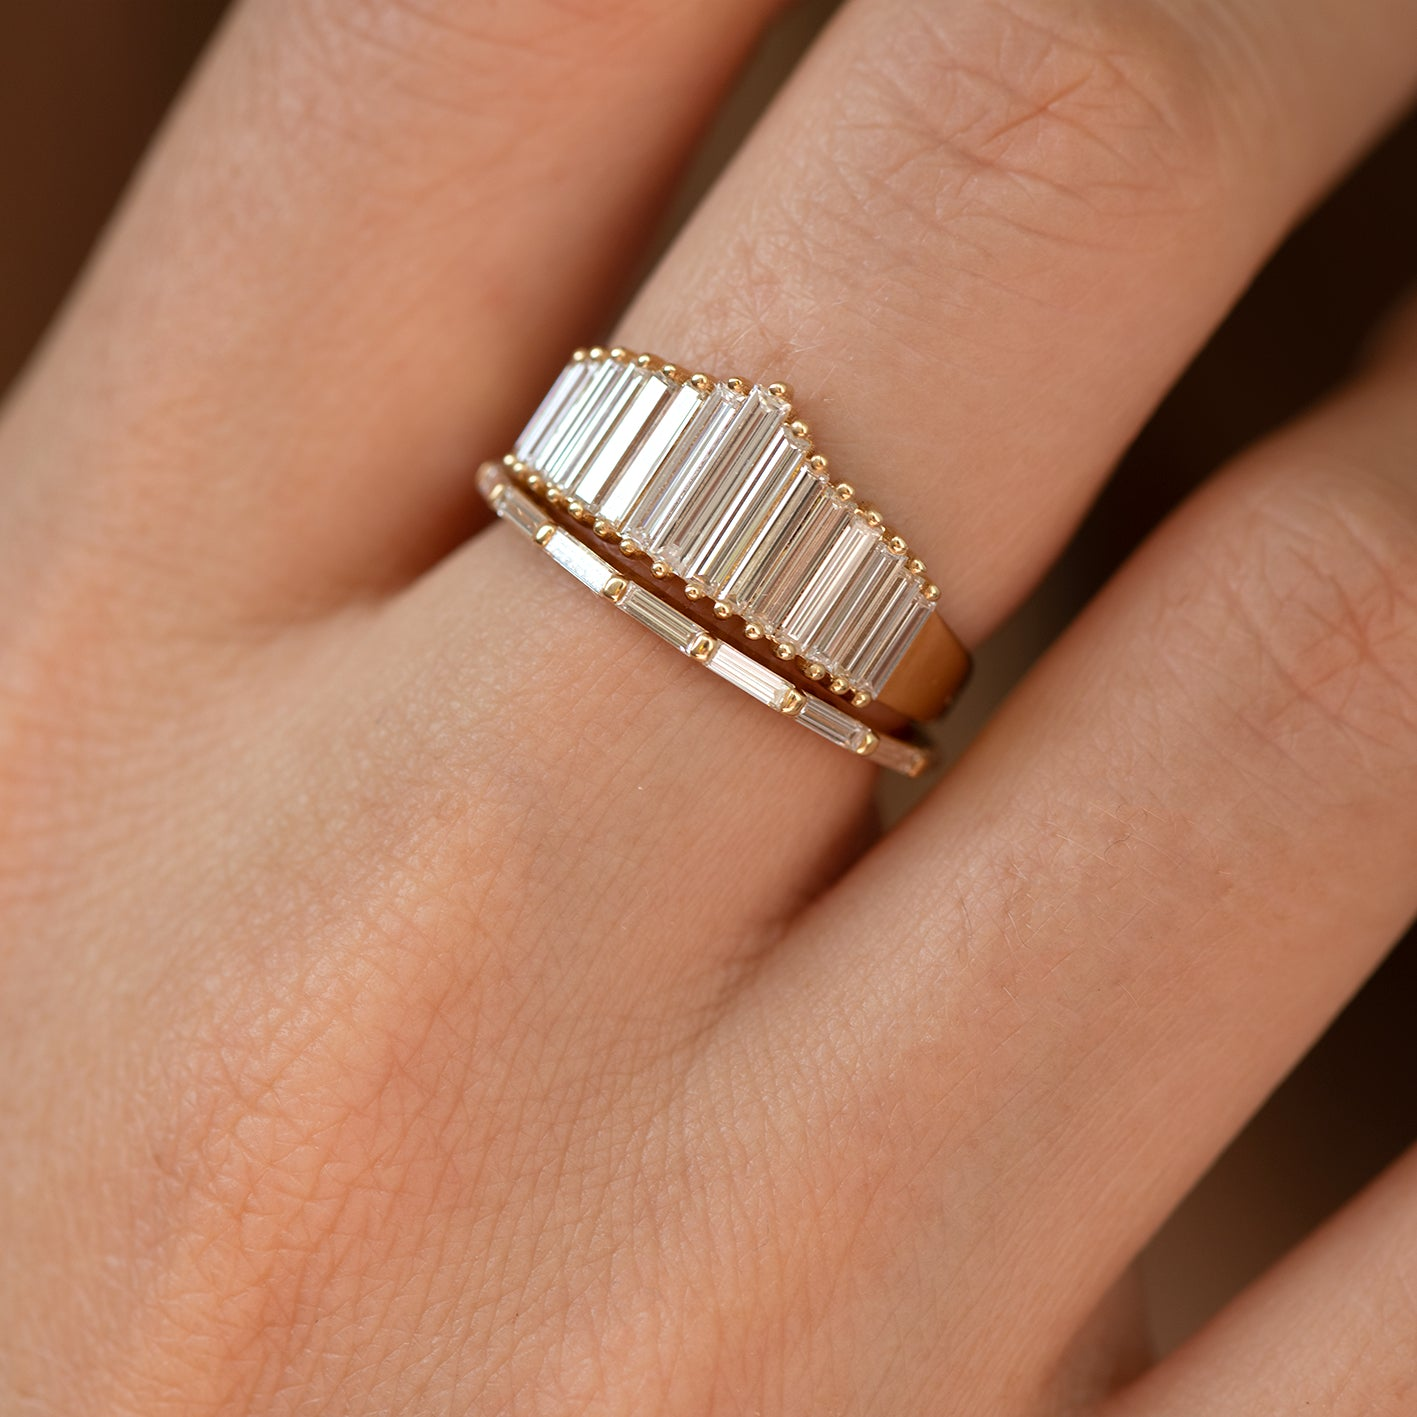 Art Deco Inspired Ring Set with Needle Baguette Diamonds1